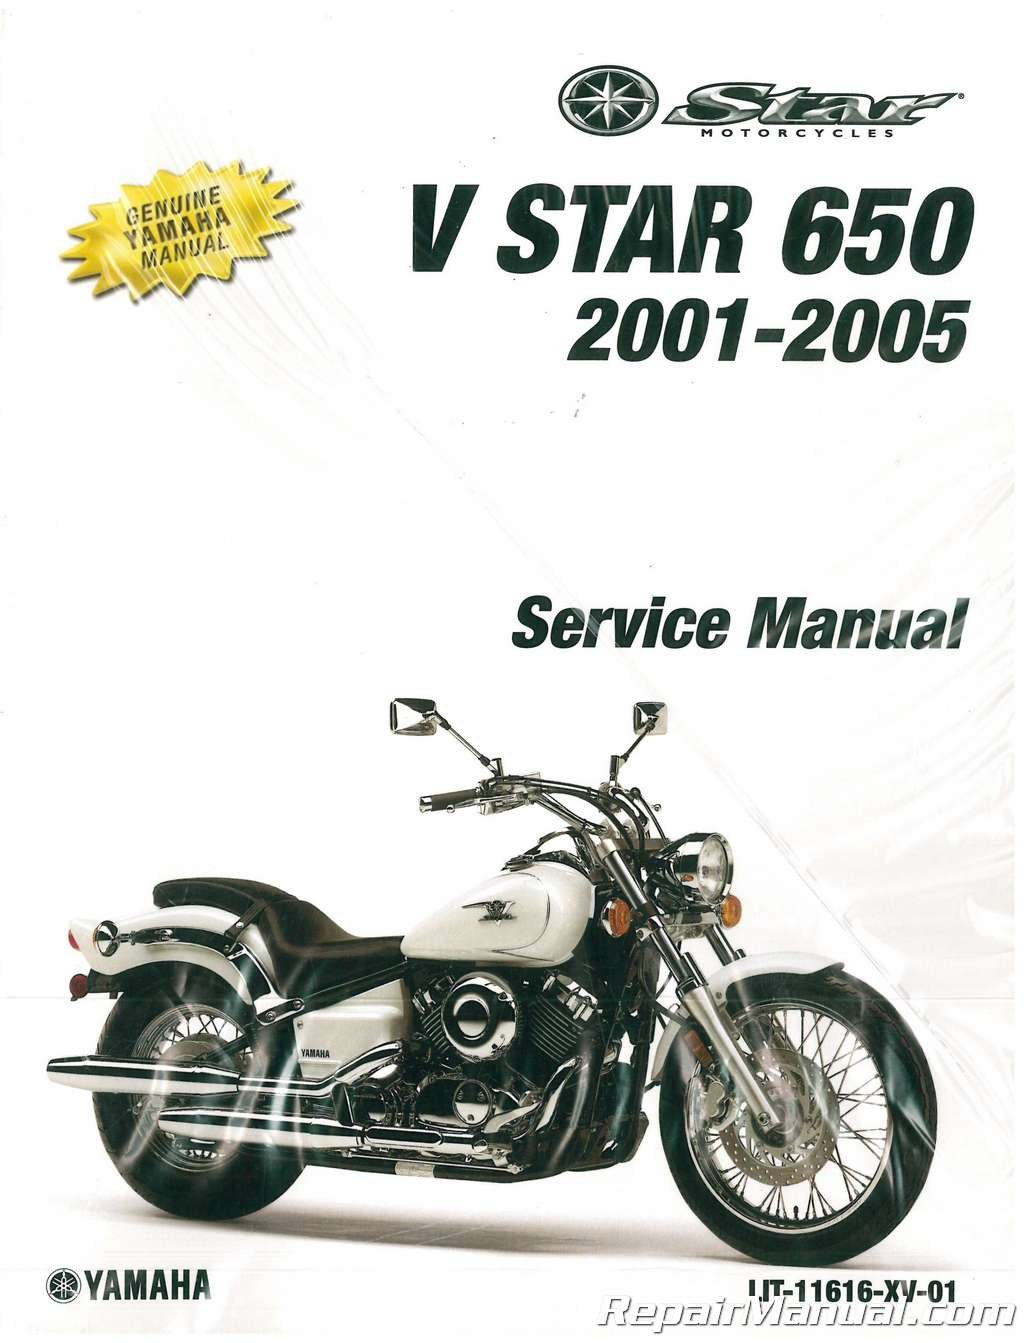 LIT-11616-XV-01 2001-2005 Yamaha XVS650 V-Star Silverado Classic Motorcycle Service  Manual: Manufacturer: Amazon.com: Books